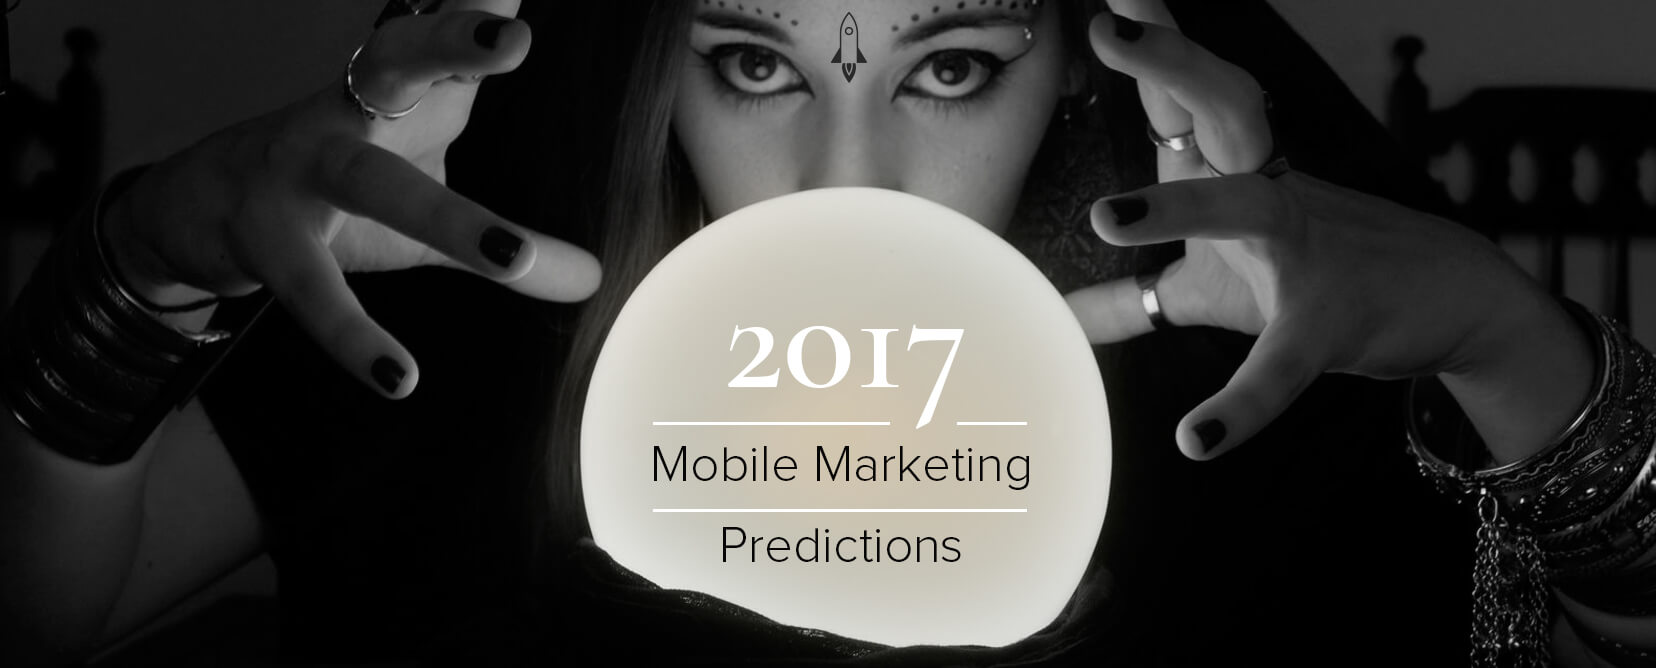 5 Mobile Marketing Predictions for 2017